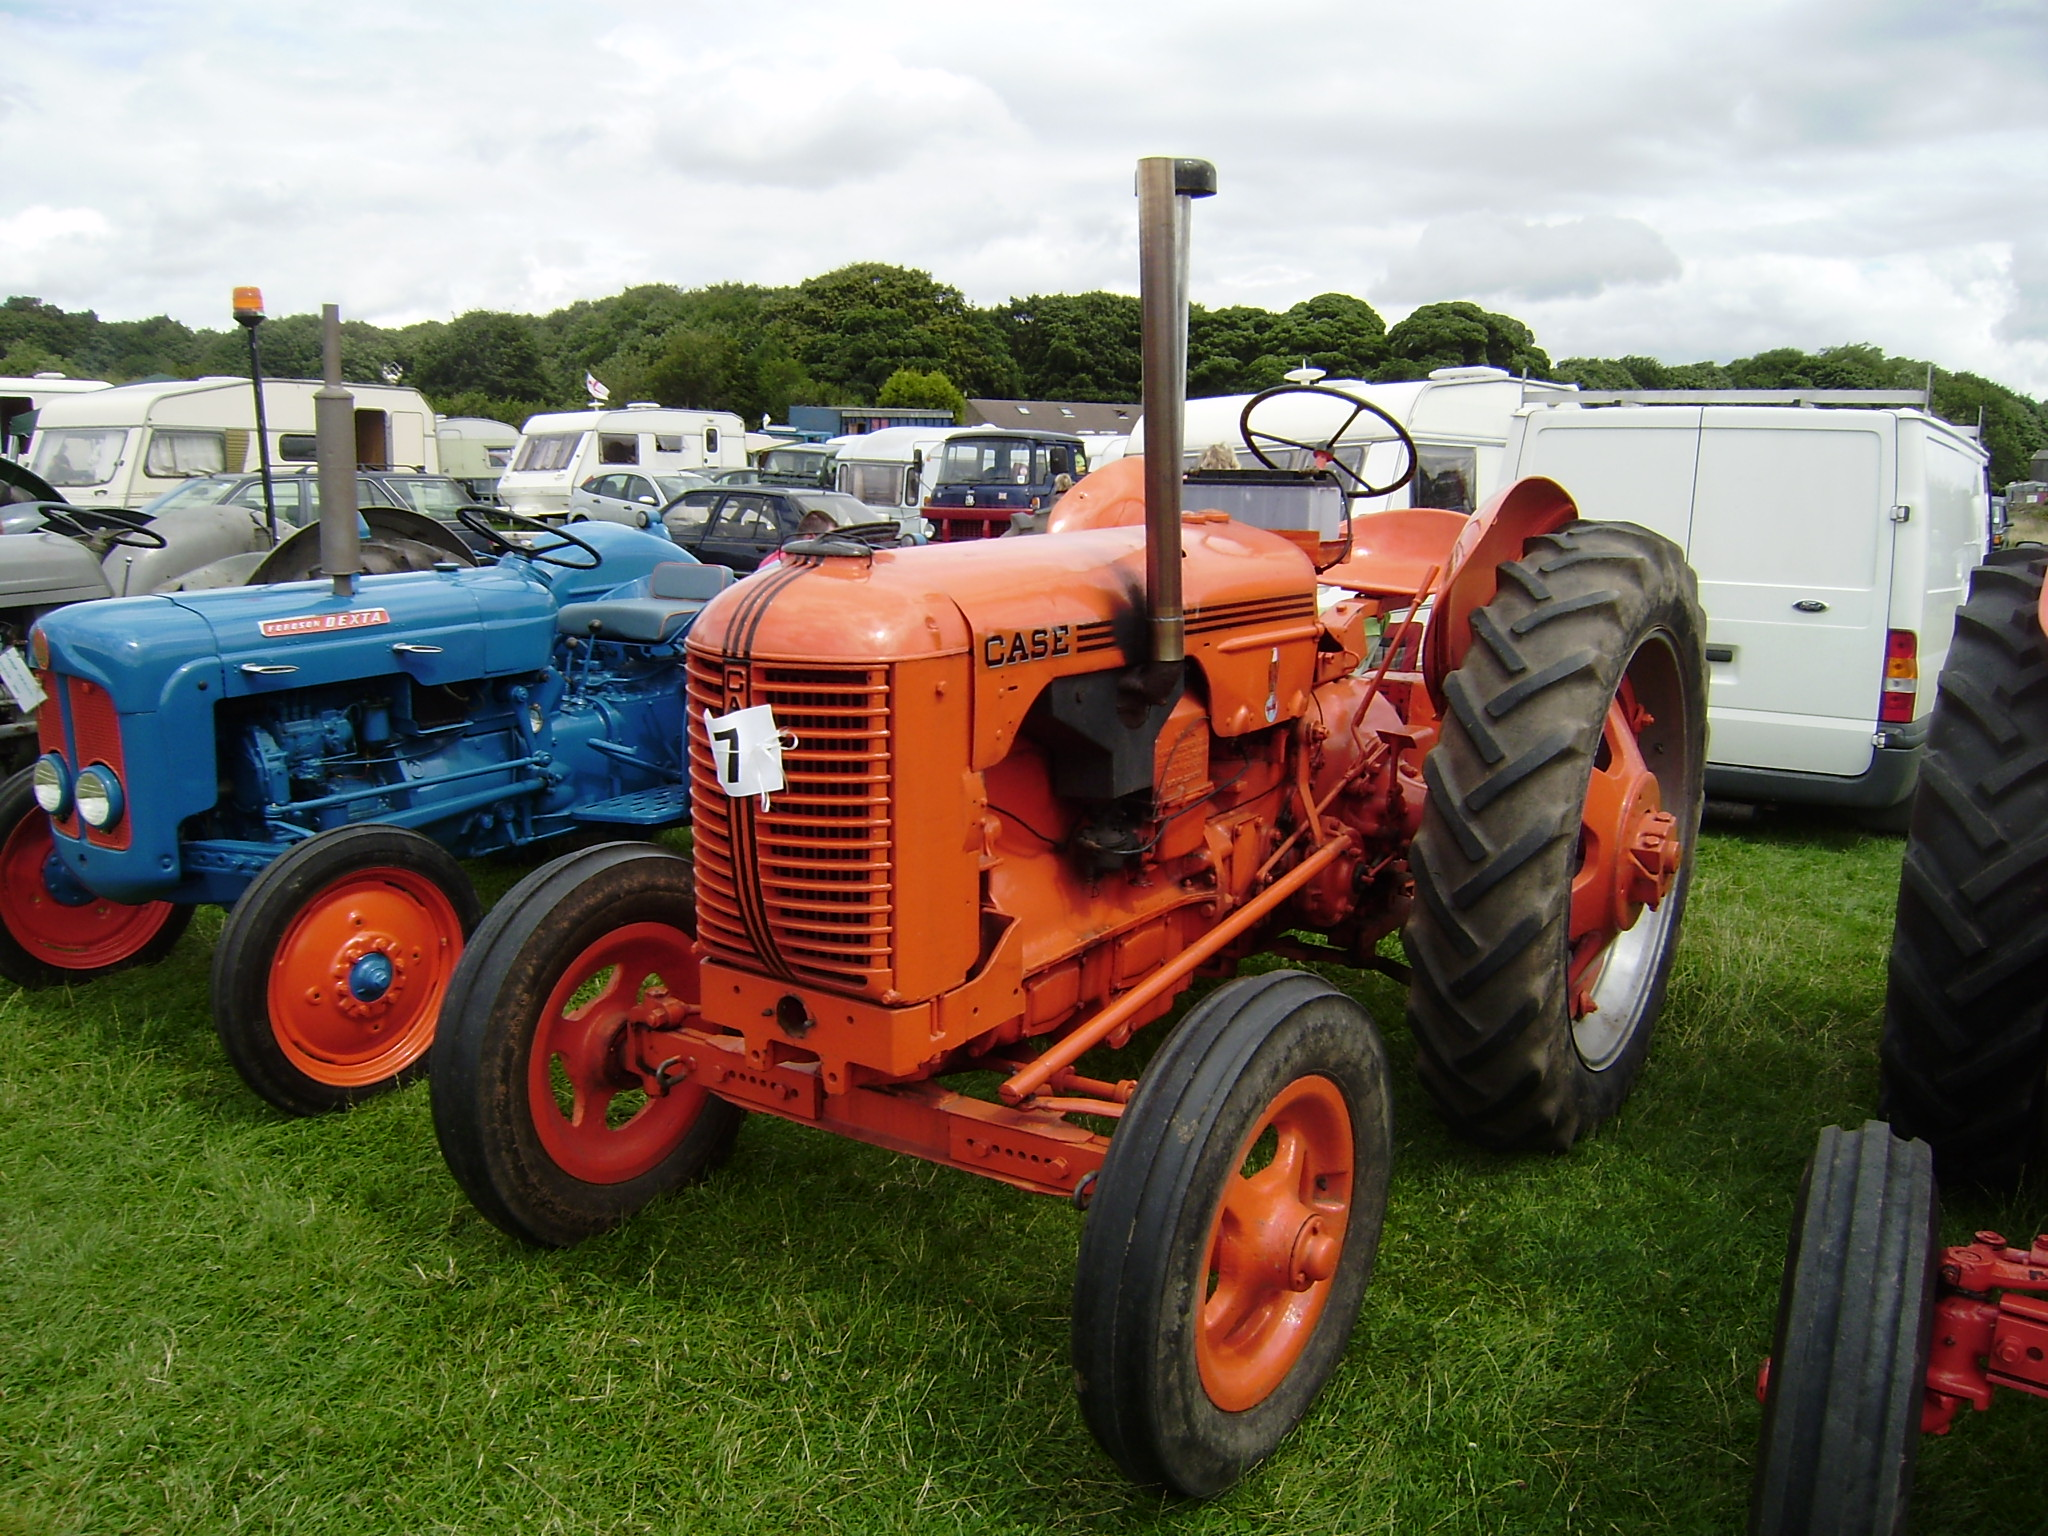 Case Tracked Tractors : Case corporation tractor construction plant wiki the